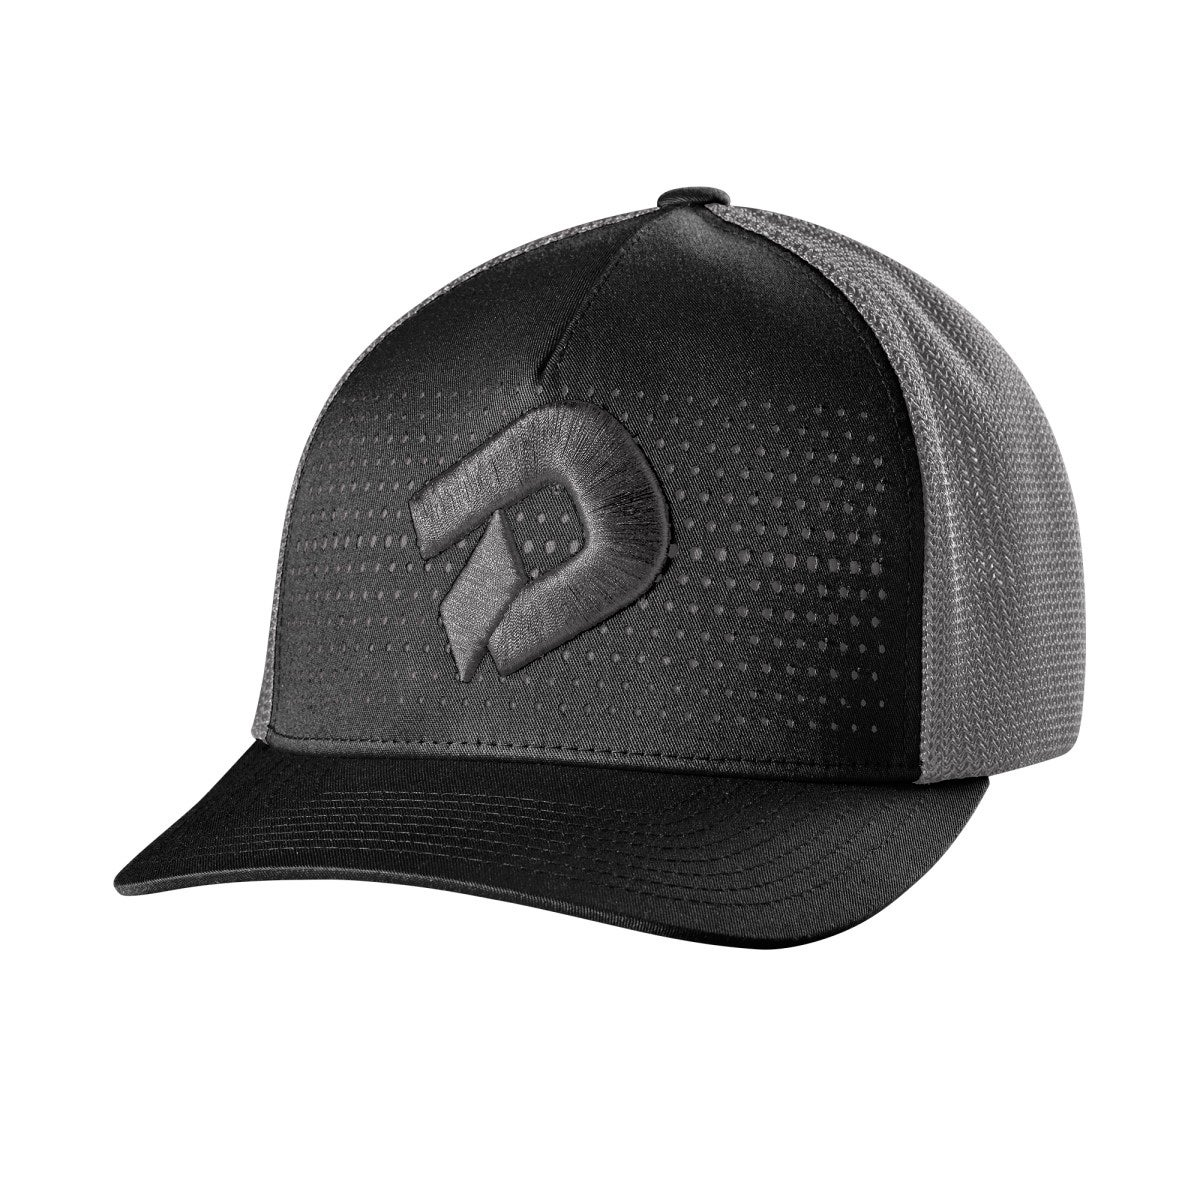 DeMarini Radiation D Flexfit Hat